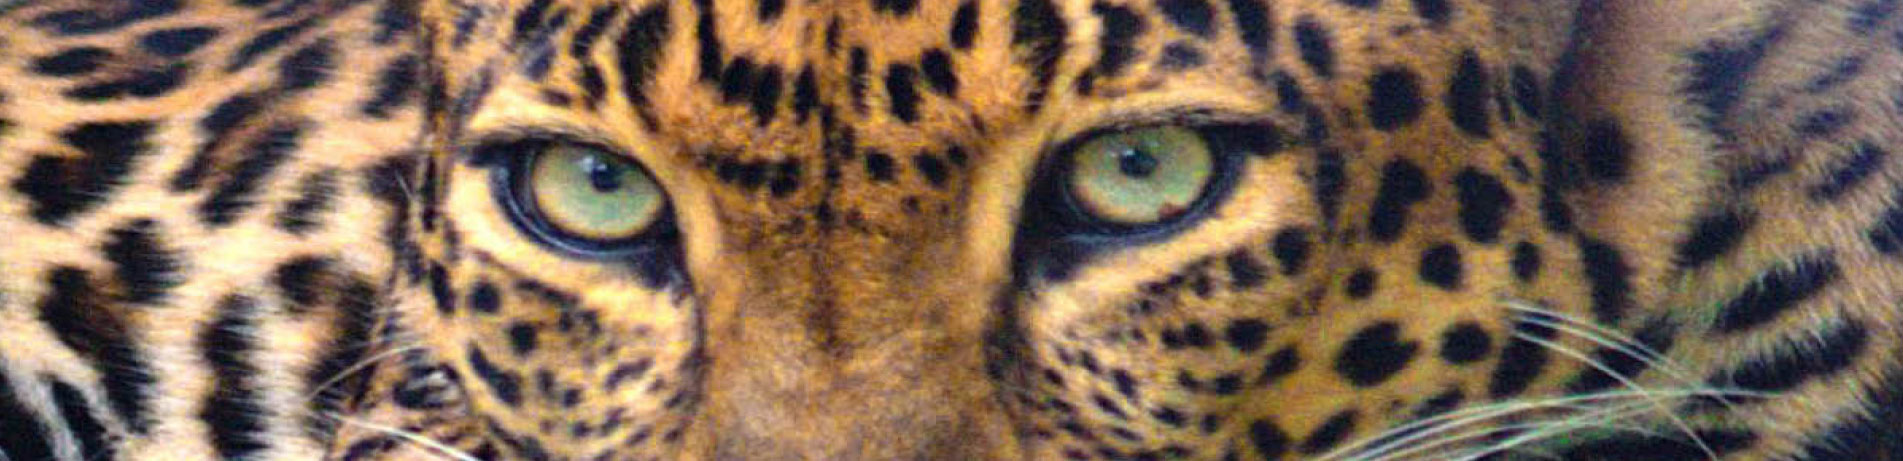 Close up image of an Indochinese leopard